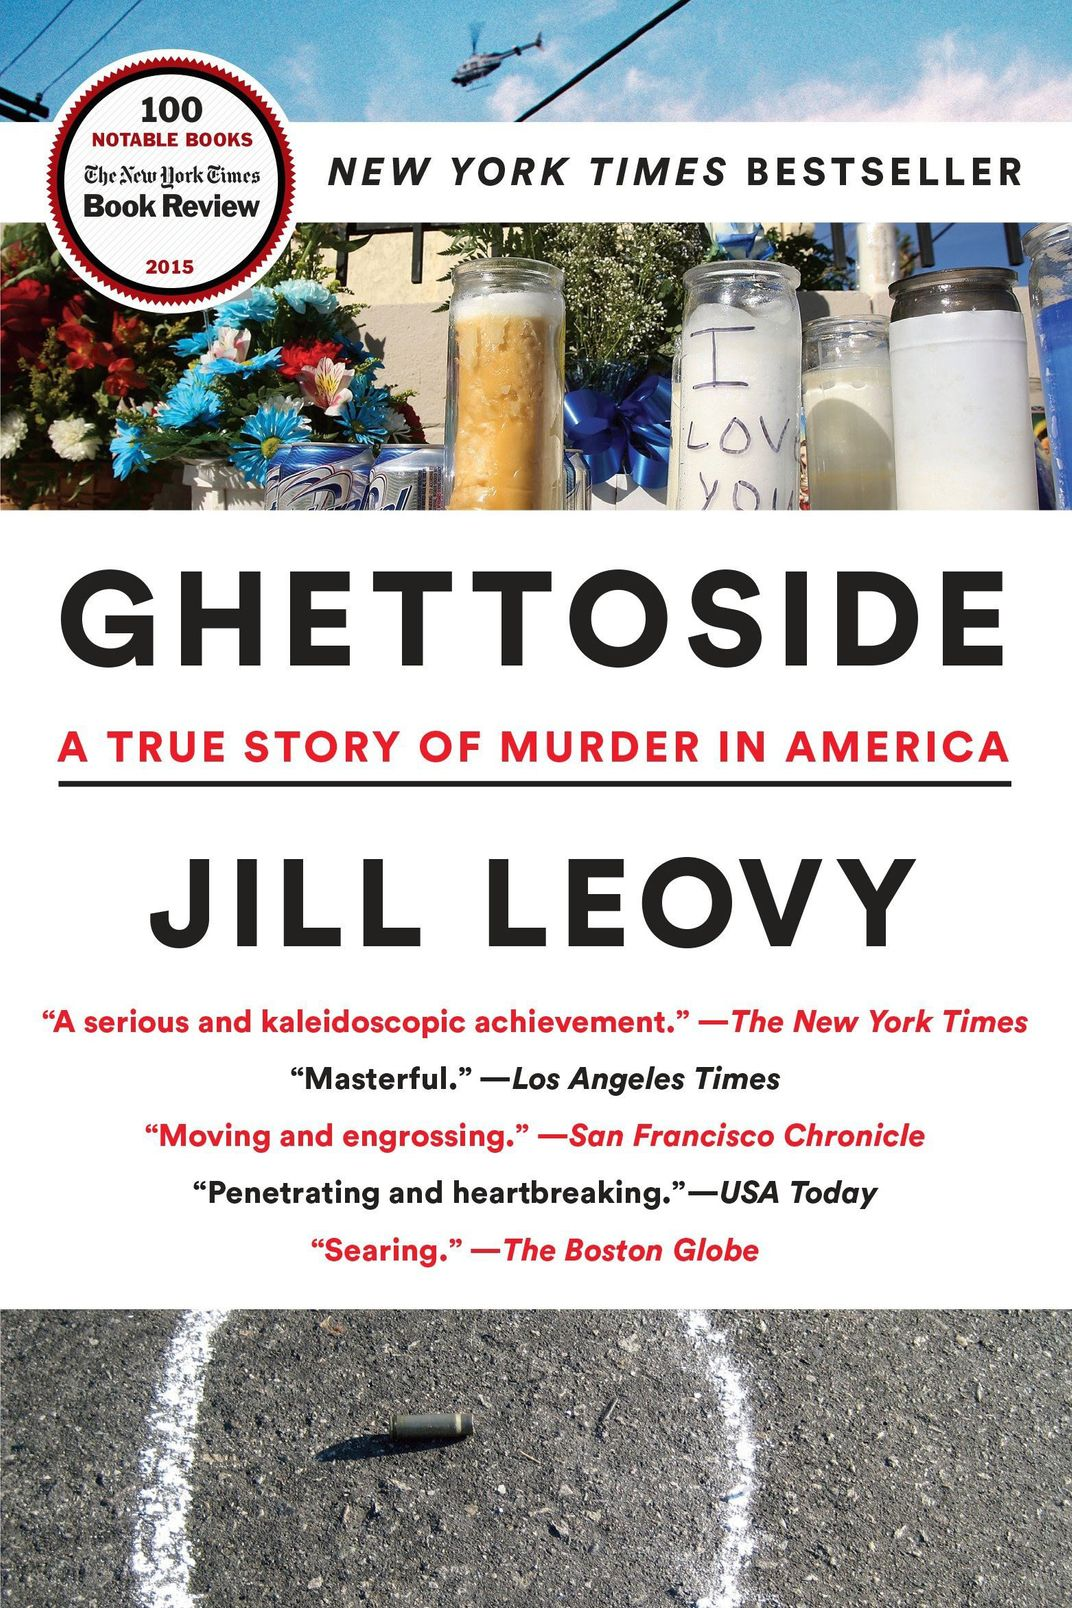 33 Great True-Crime Books, According to Crime Writers